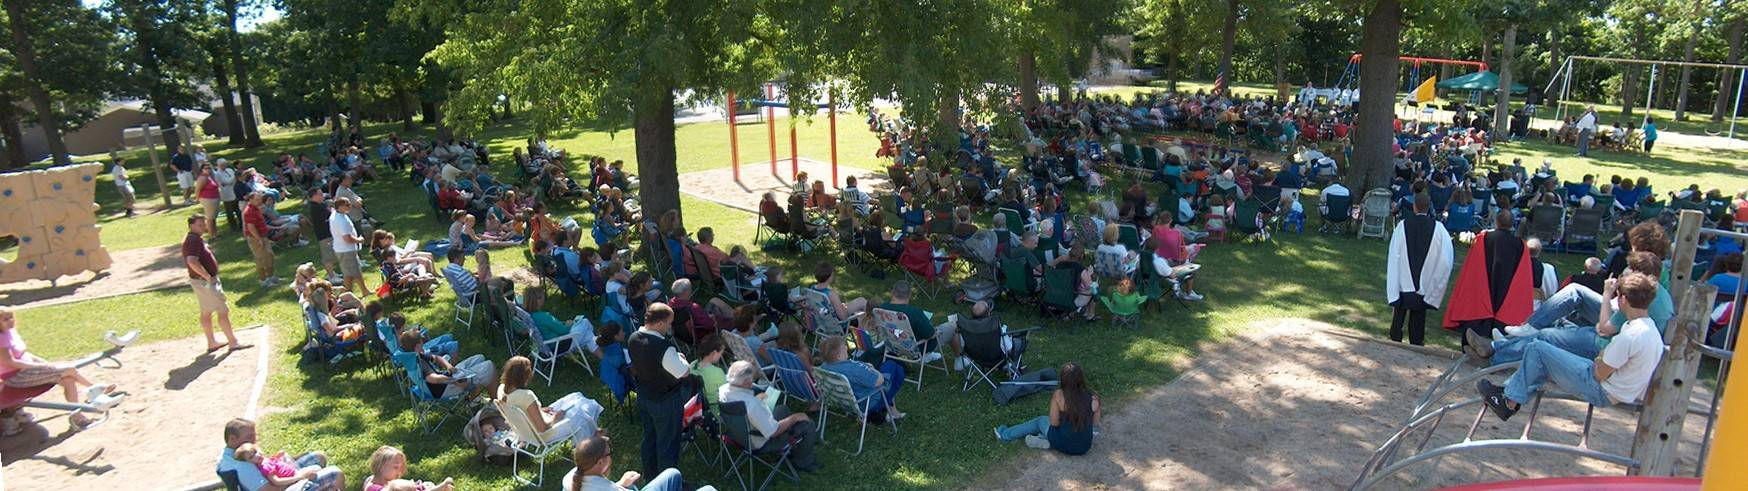 Outdoor Mass---over 750 attended